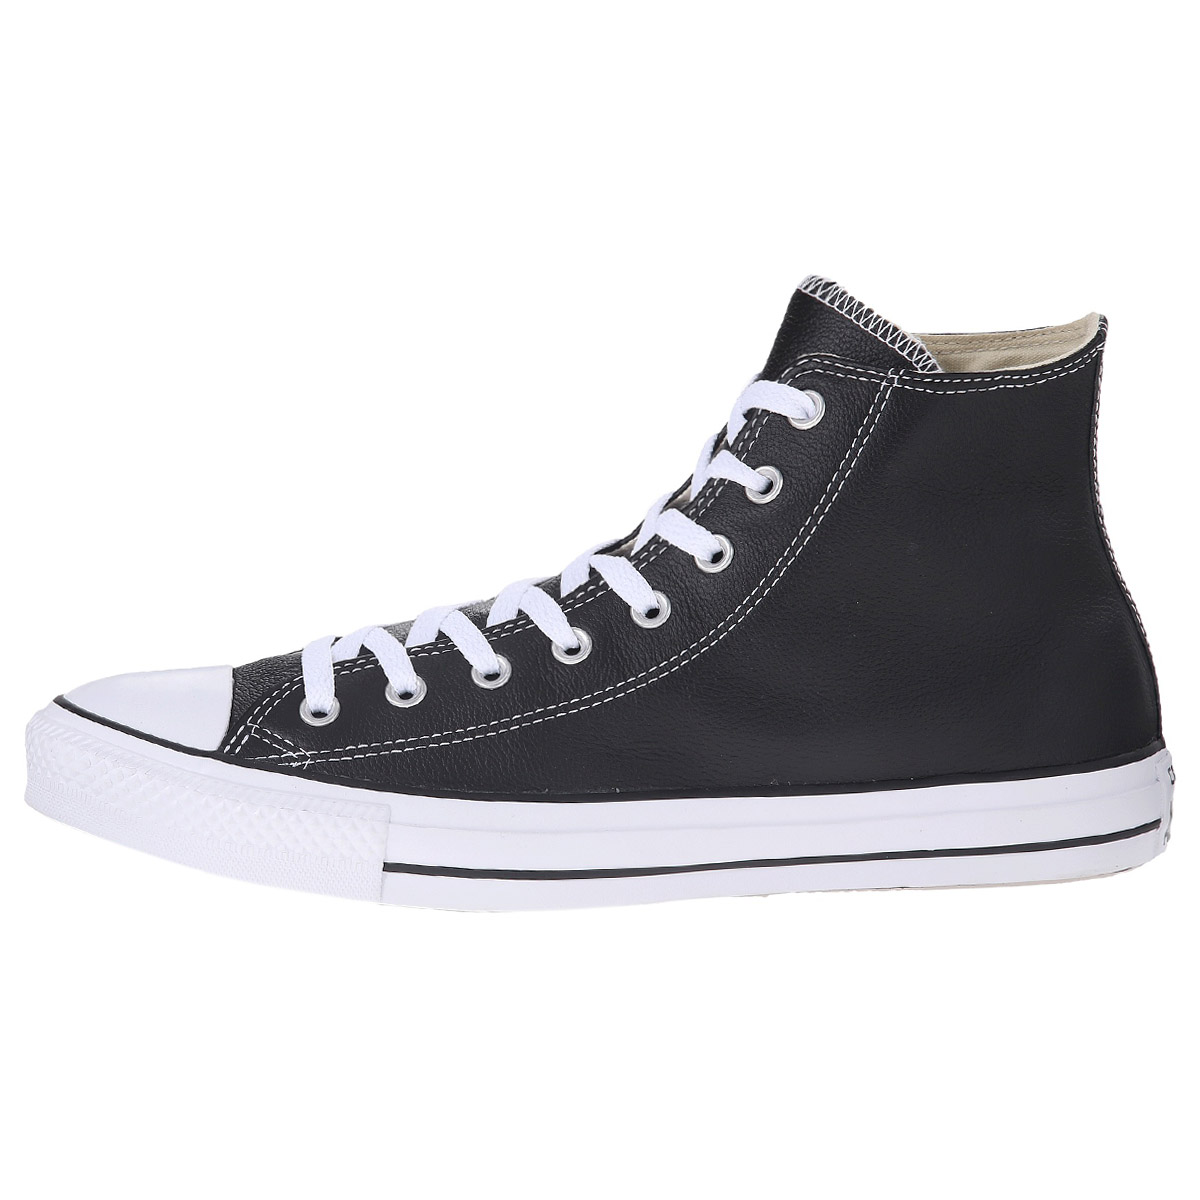 converse chuck taylor all star hi leather damen schuhe schwarz sneaker neu 1s581 ebay. Black Bedroom Furniture Sets. Home Design Ideas